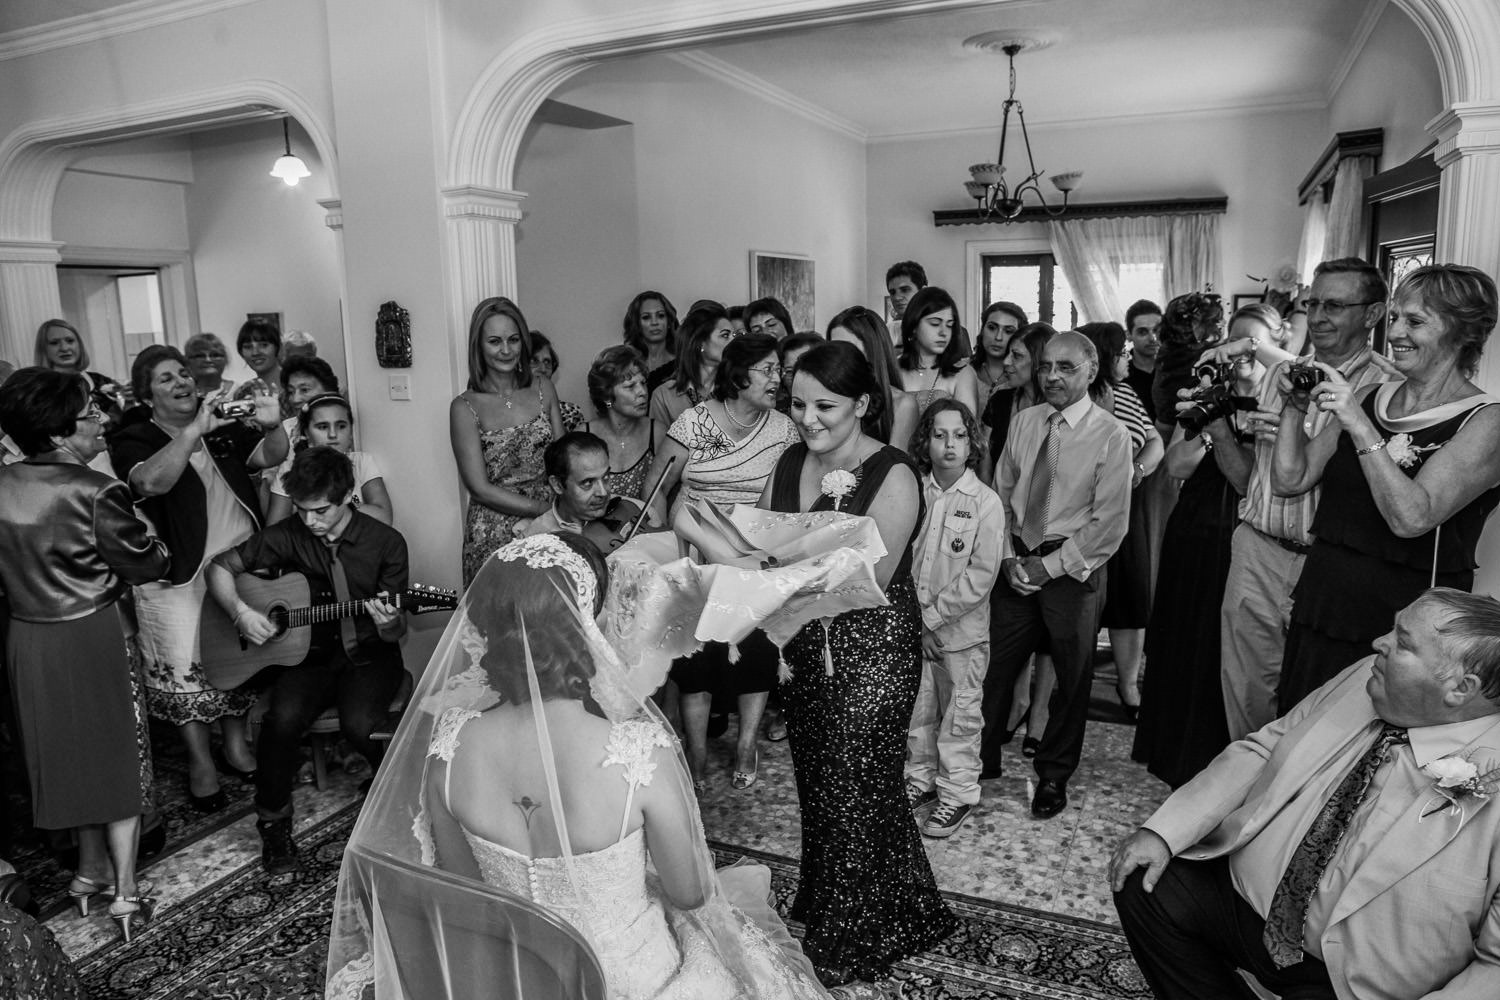 Dressing the bride, Greek wedding traditions